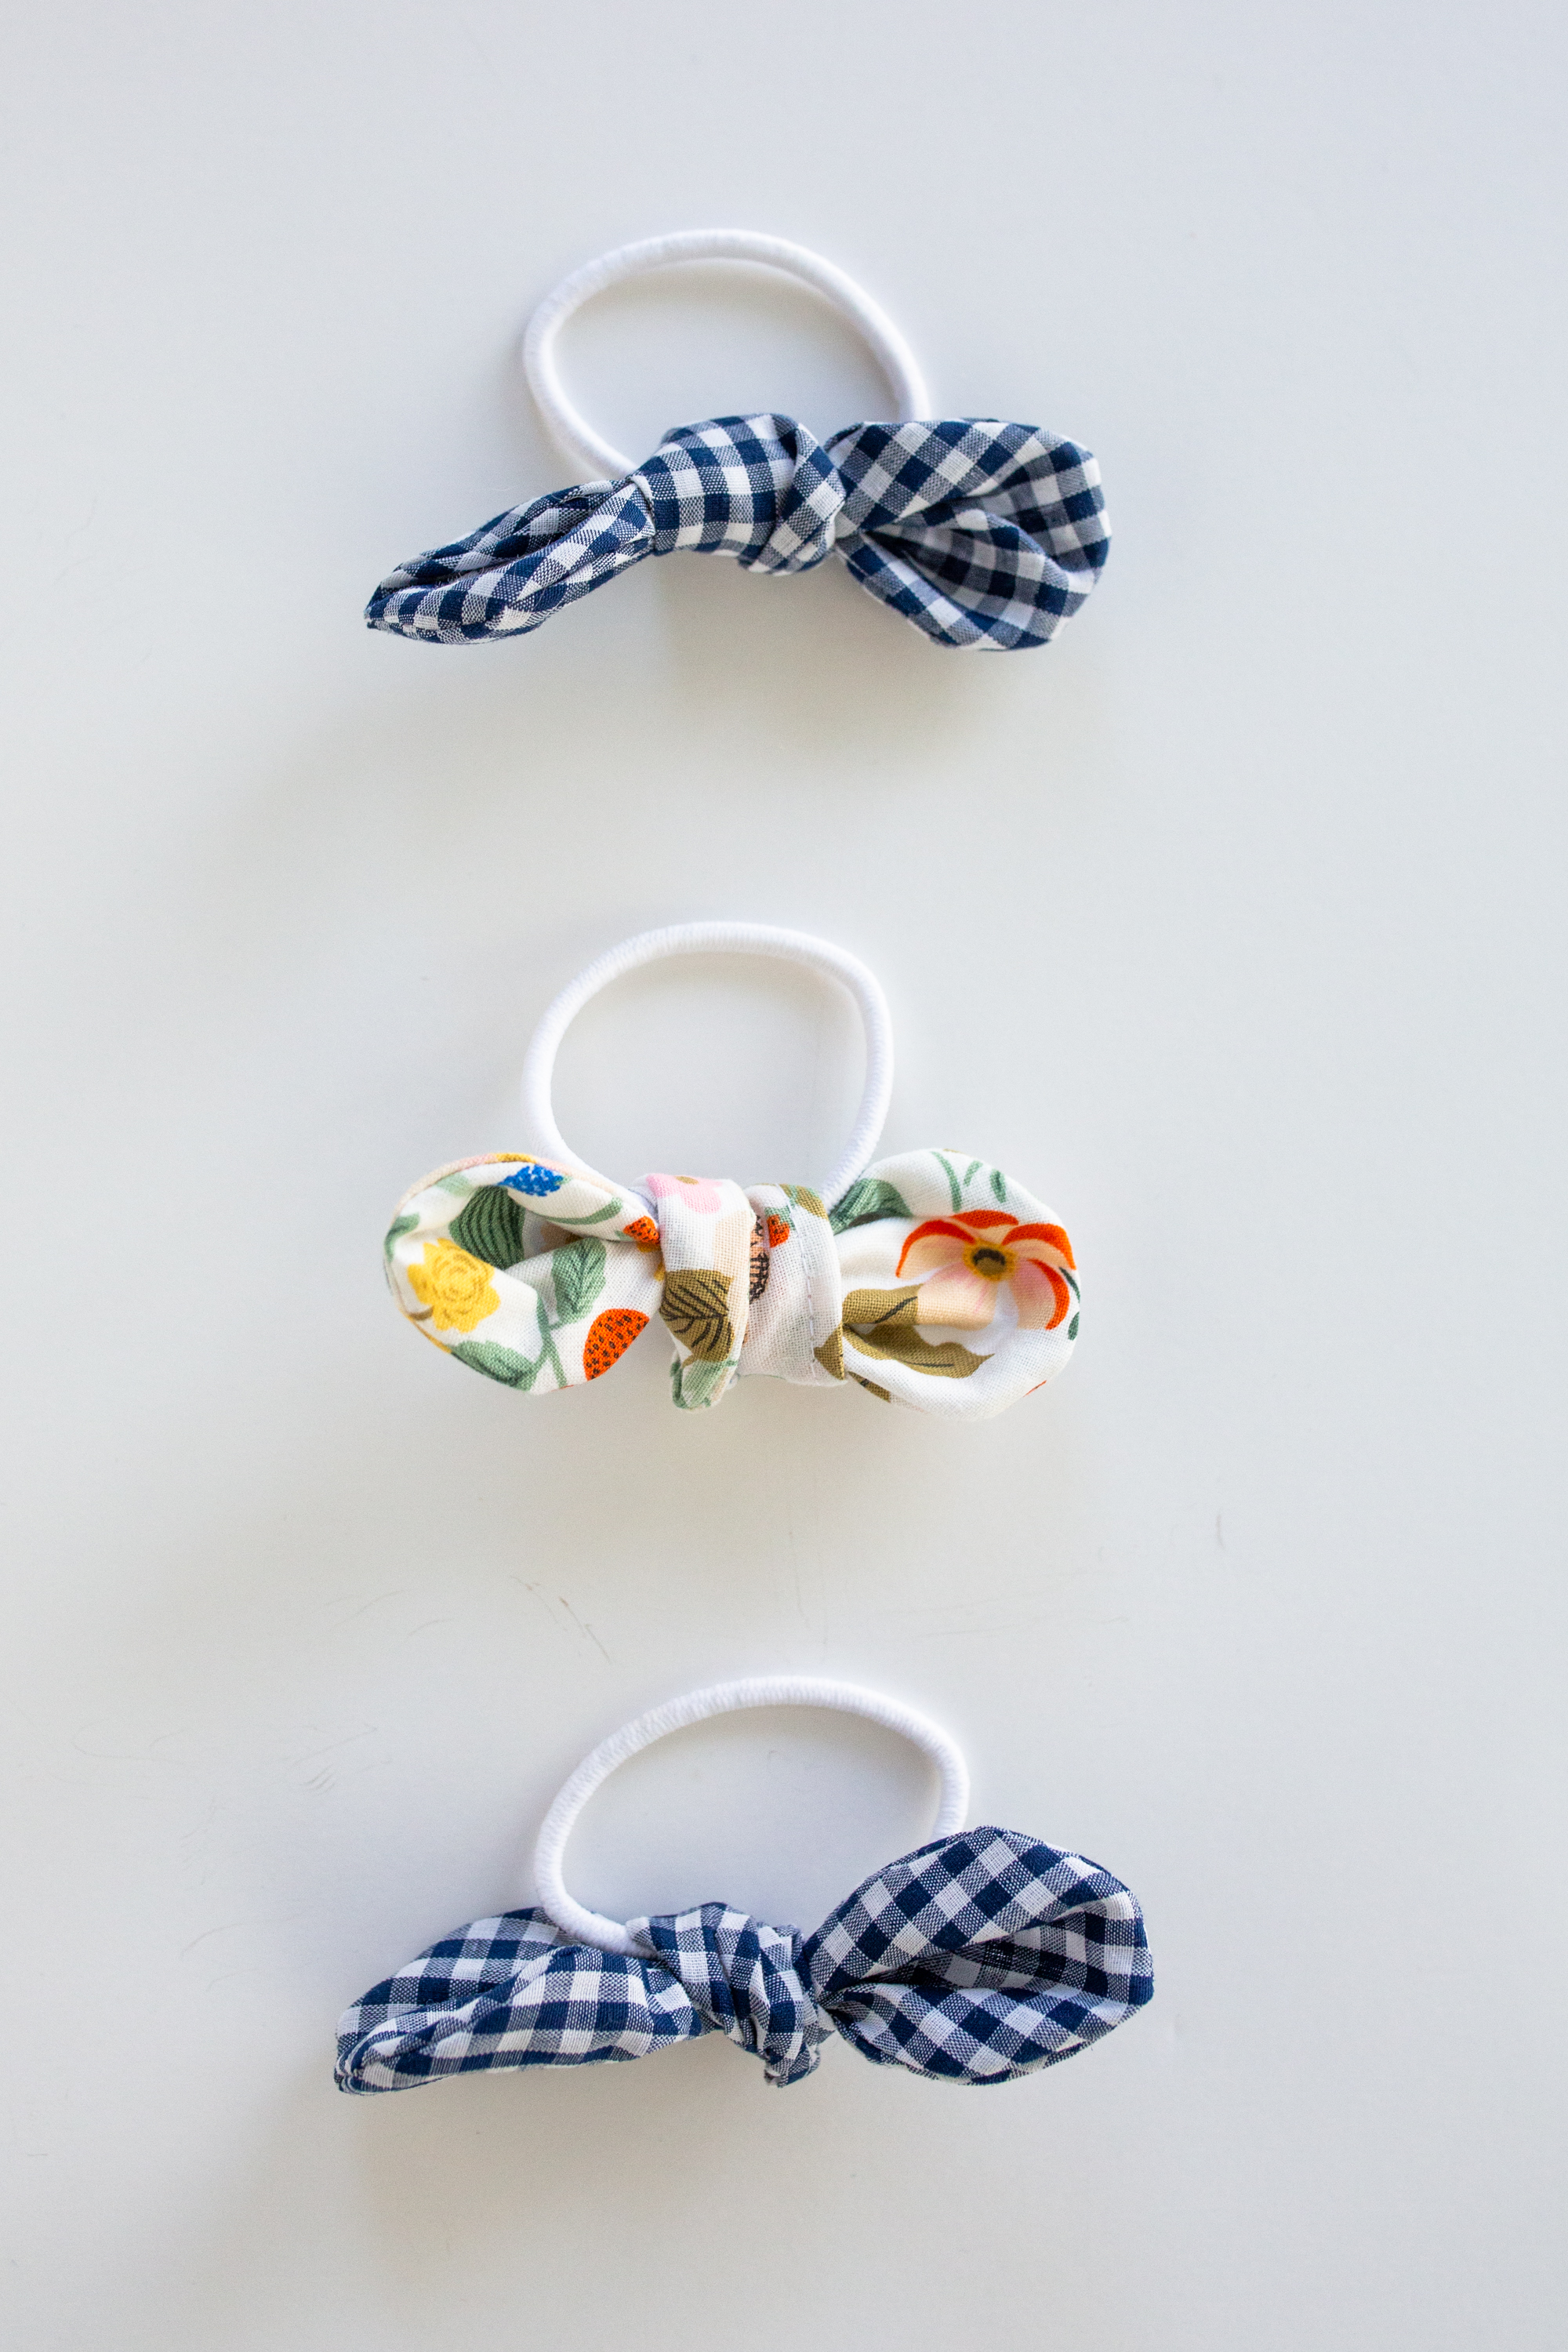 An Easy Handmade Christmas Gift Idea / Christmas Homemade Gift Idea / Rifle Paper Co. / Easy Sewing Project for Beginners / Easy Sewing Gifts / DIY Sewing Gifts / Bow Hair Tie / GIngham Print / Hair Accessories - Sunshine Style, A Florida Based Fashion and Lifestyle Blog by Katie